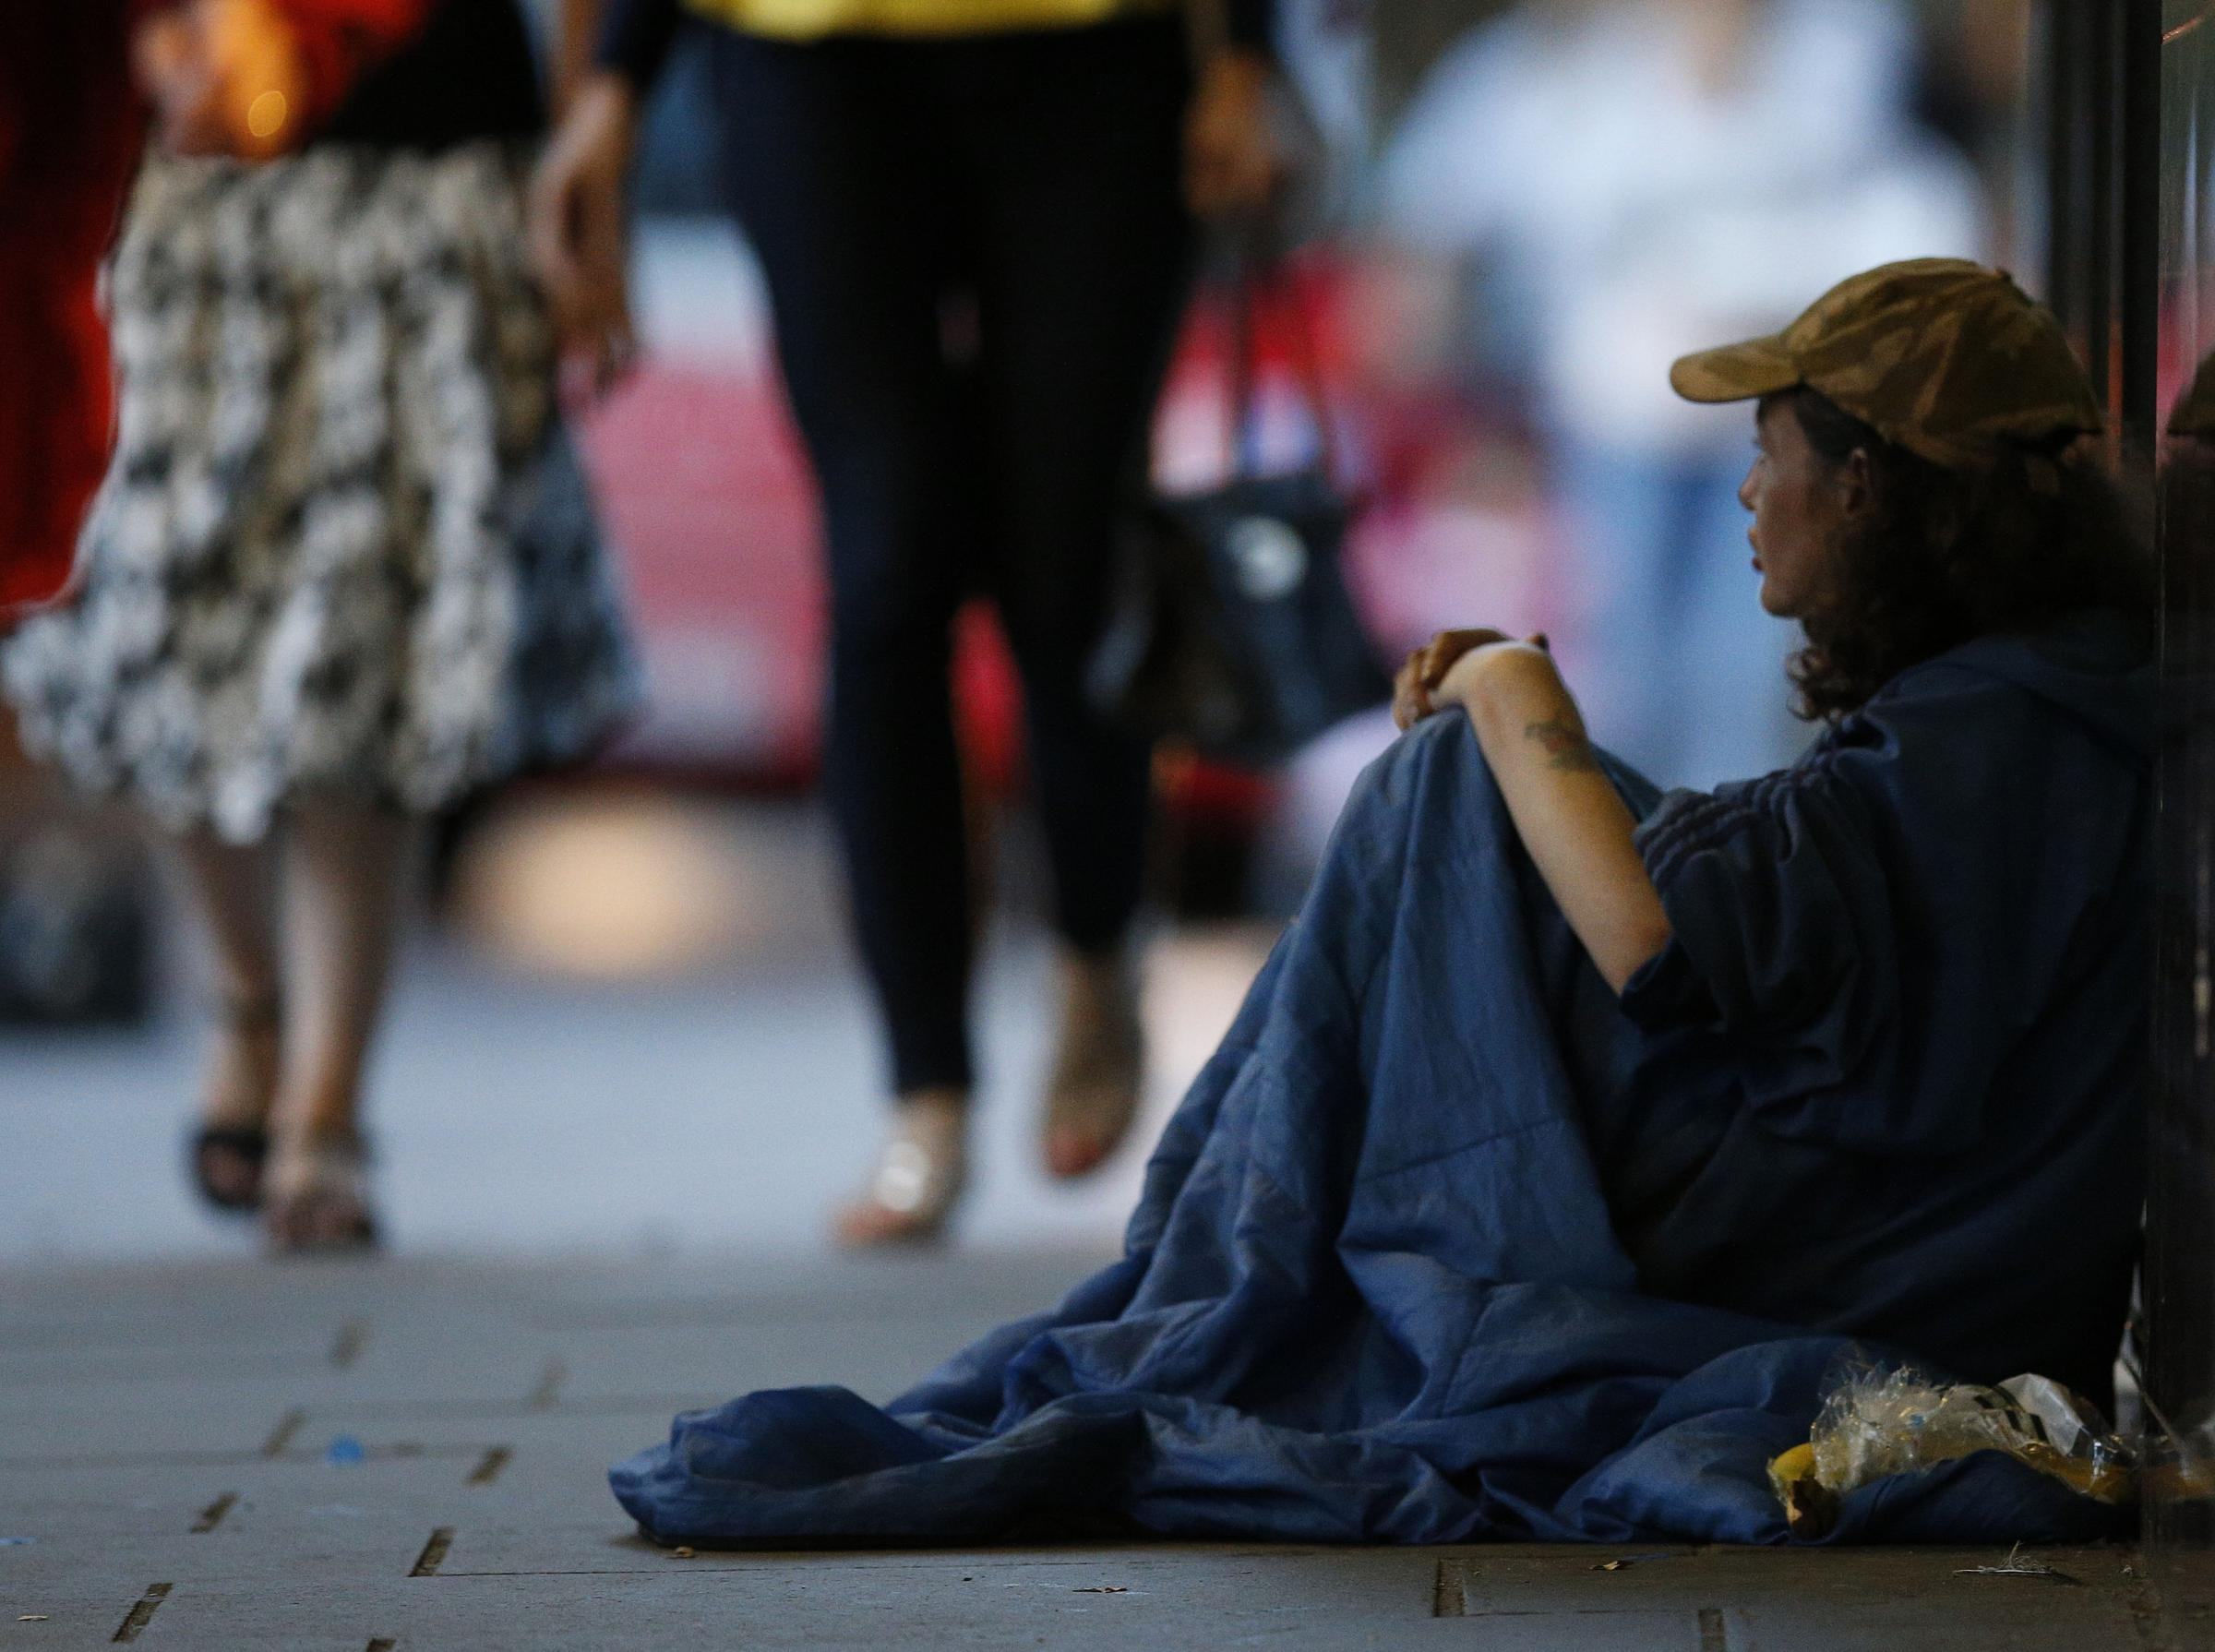 Charities say there is a homeless crisis